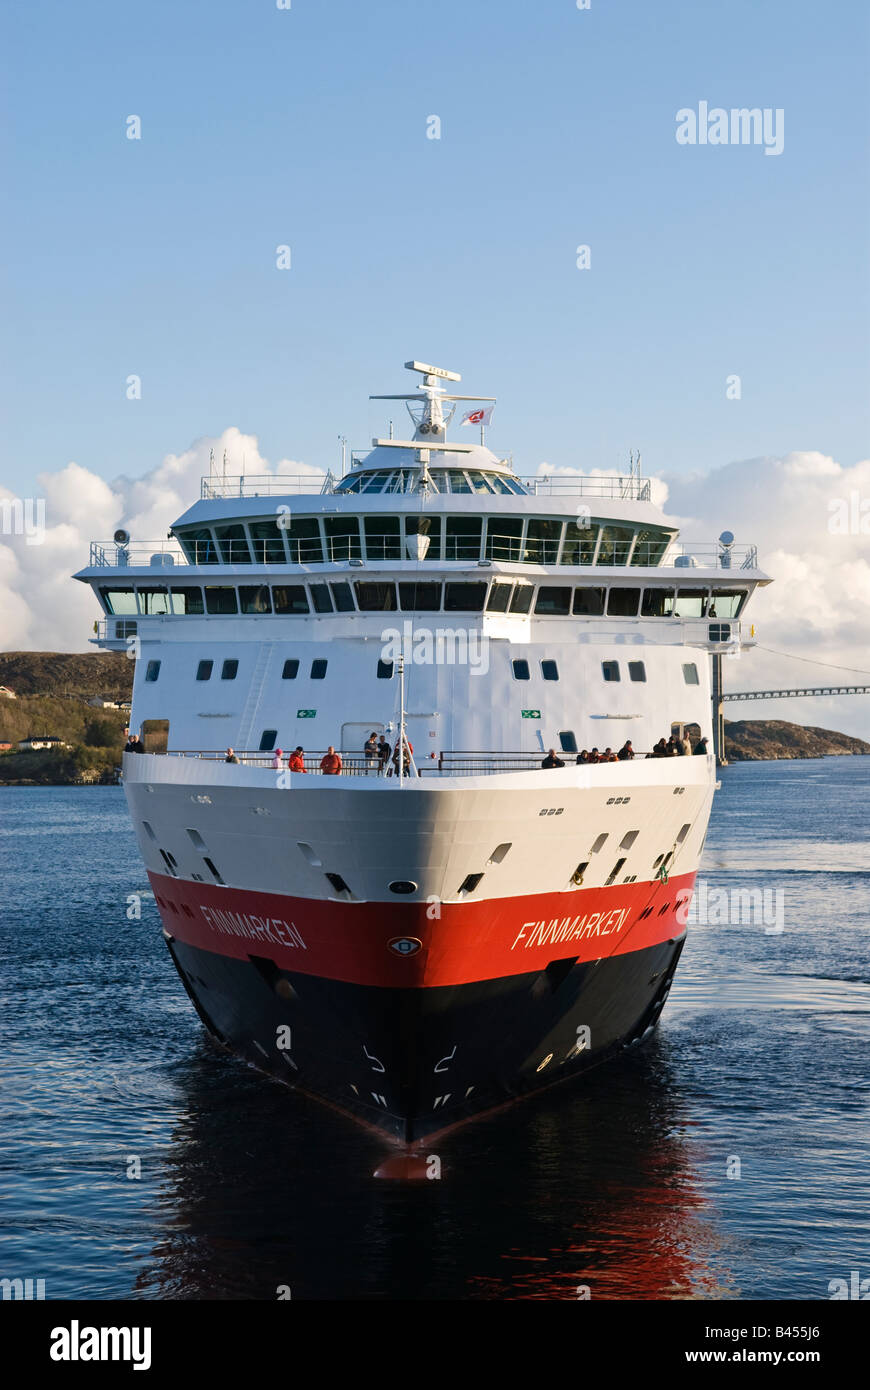 Hurtigruten, Norwegian coastal ferry arrives at port in the village of Rørvik, Nord-Trøndelag, Norway - Stock Image